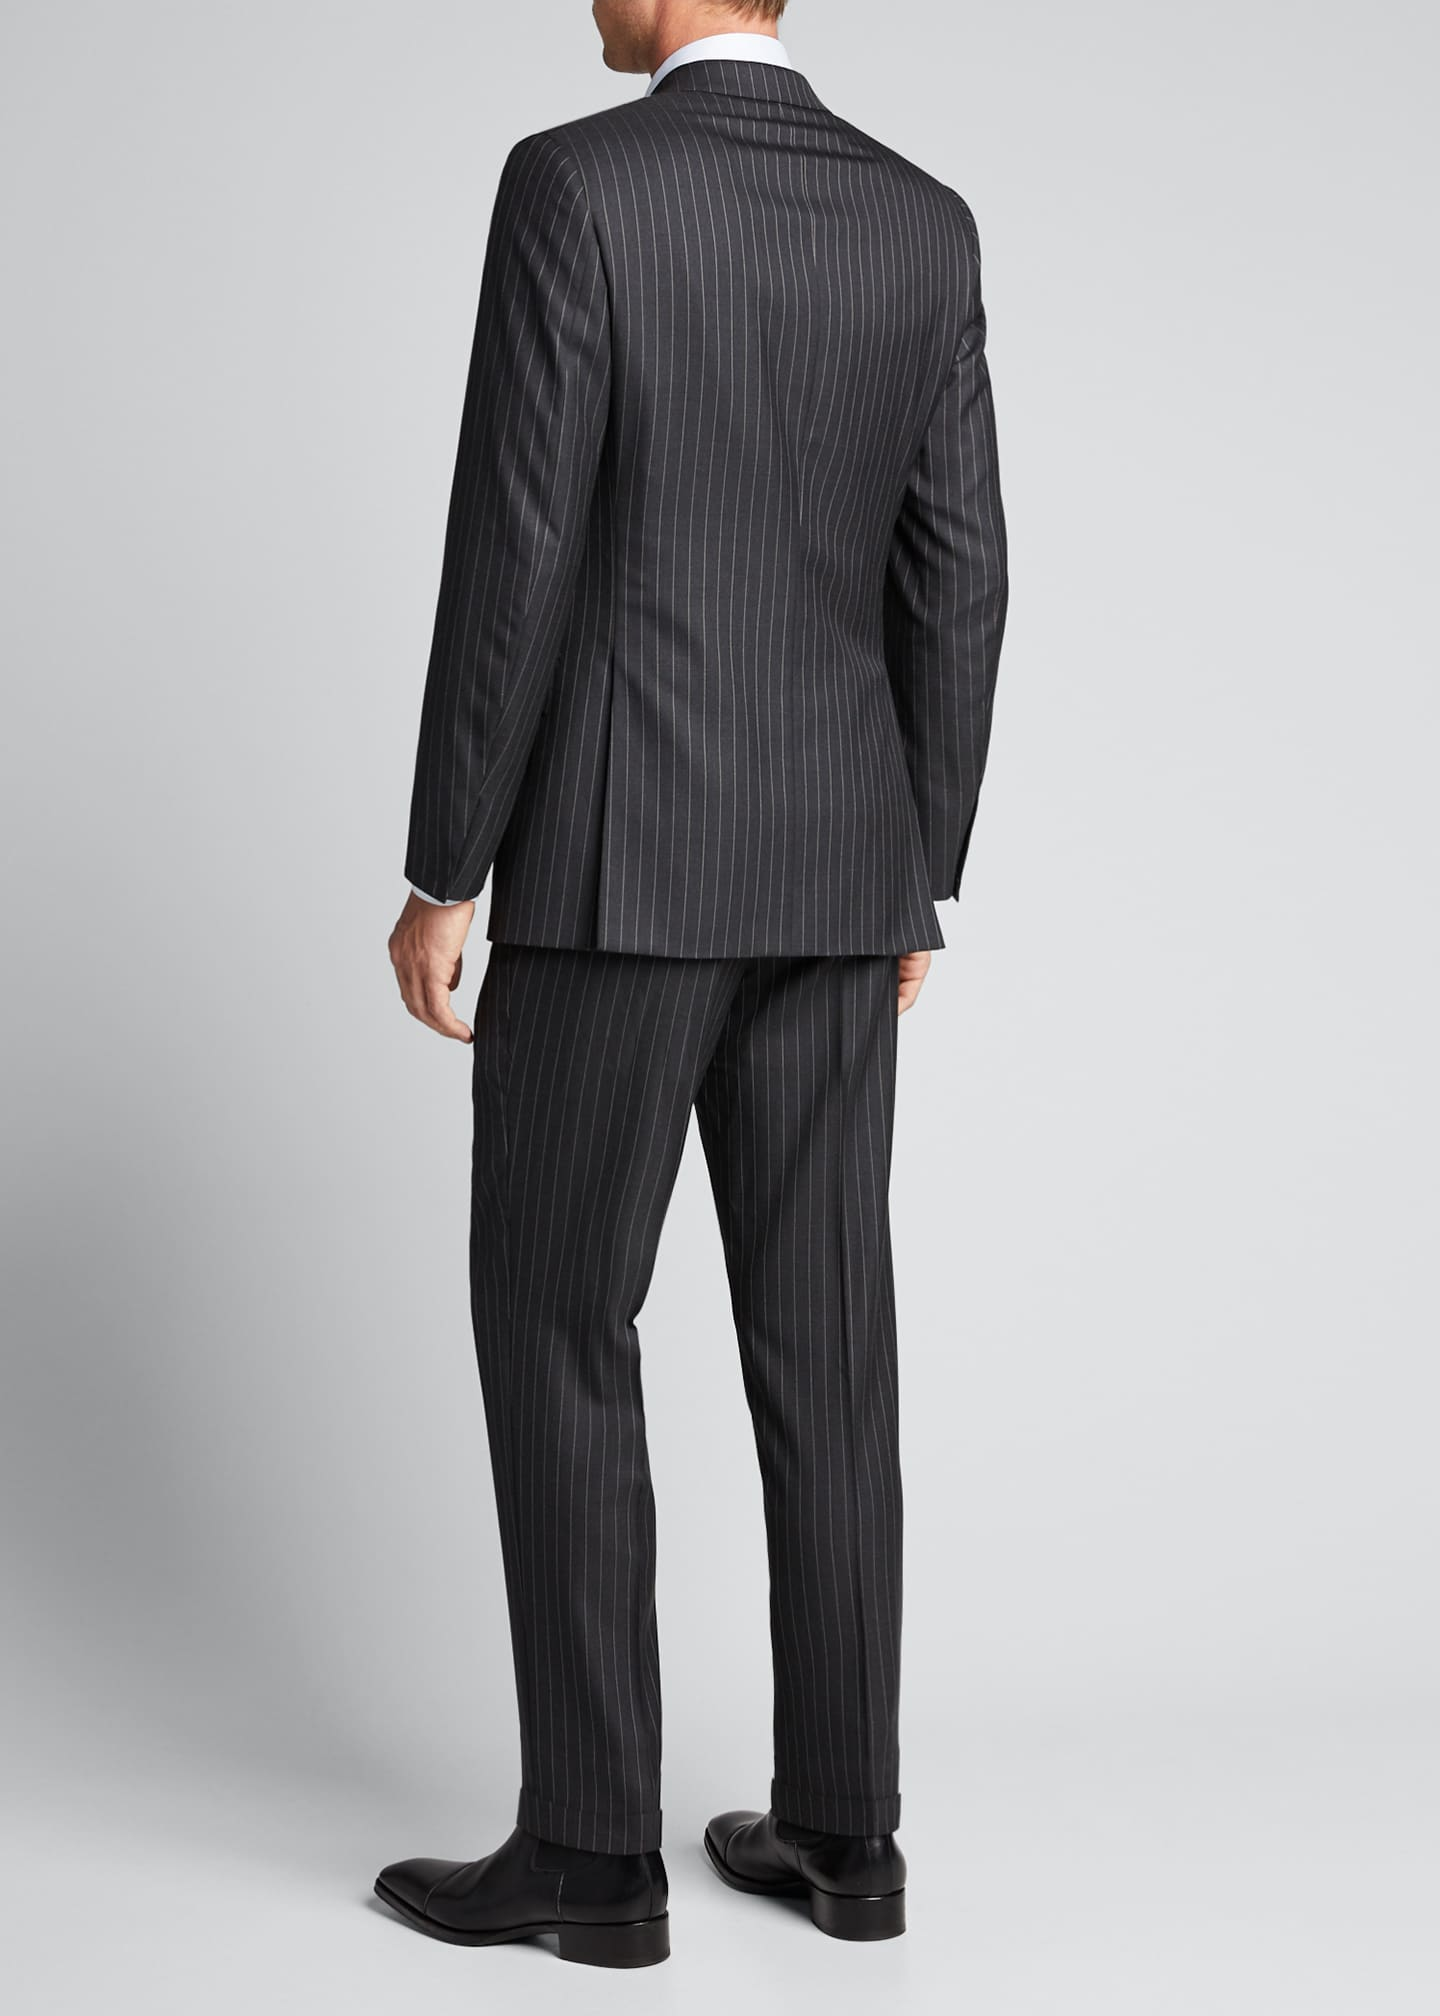 Image 2 of 5: Men's Pinstriped Two-Piece Suit